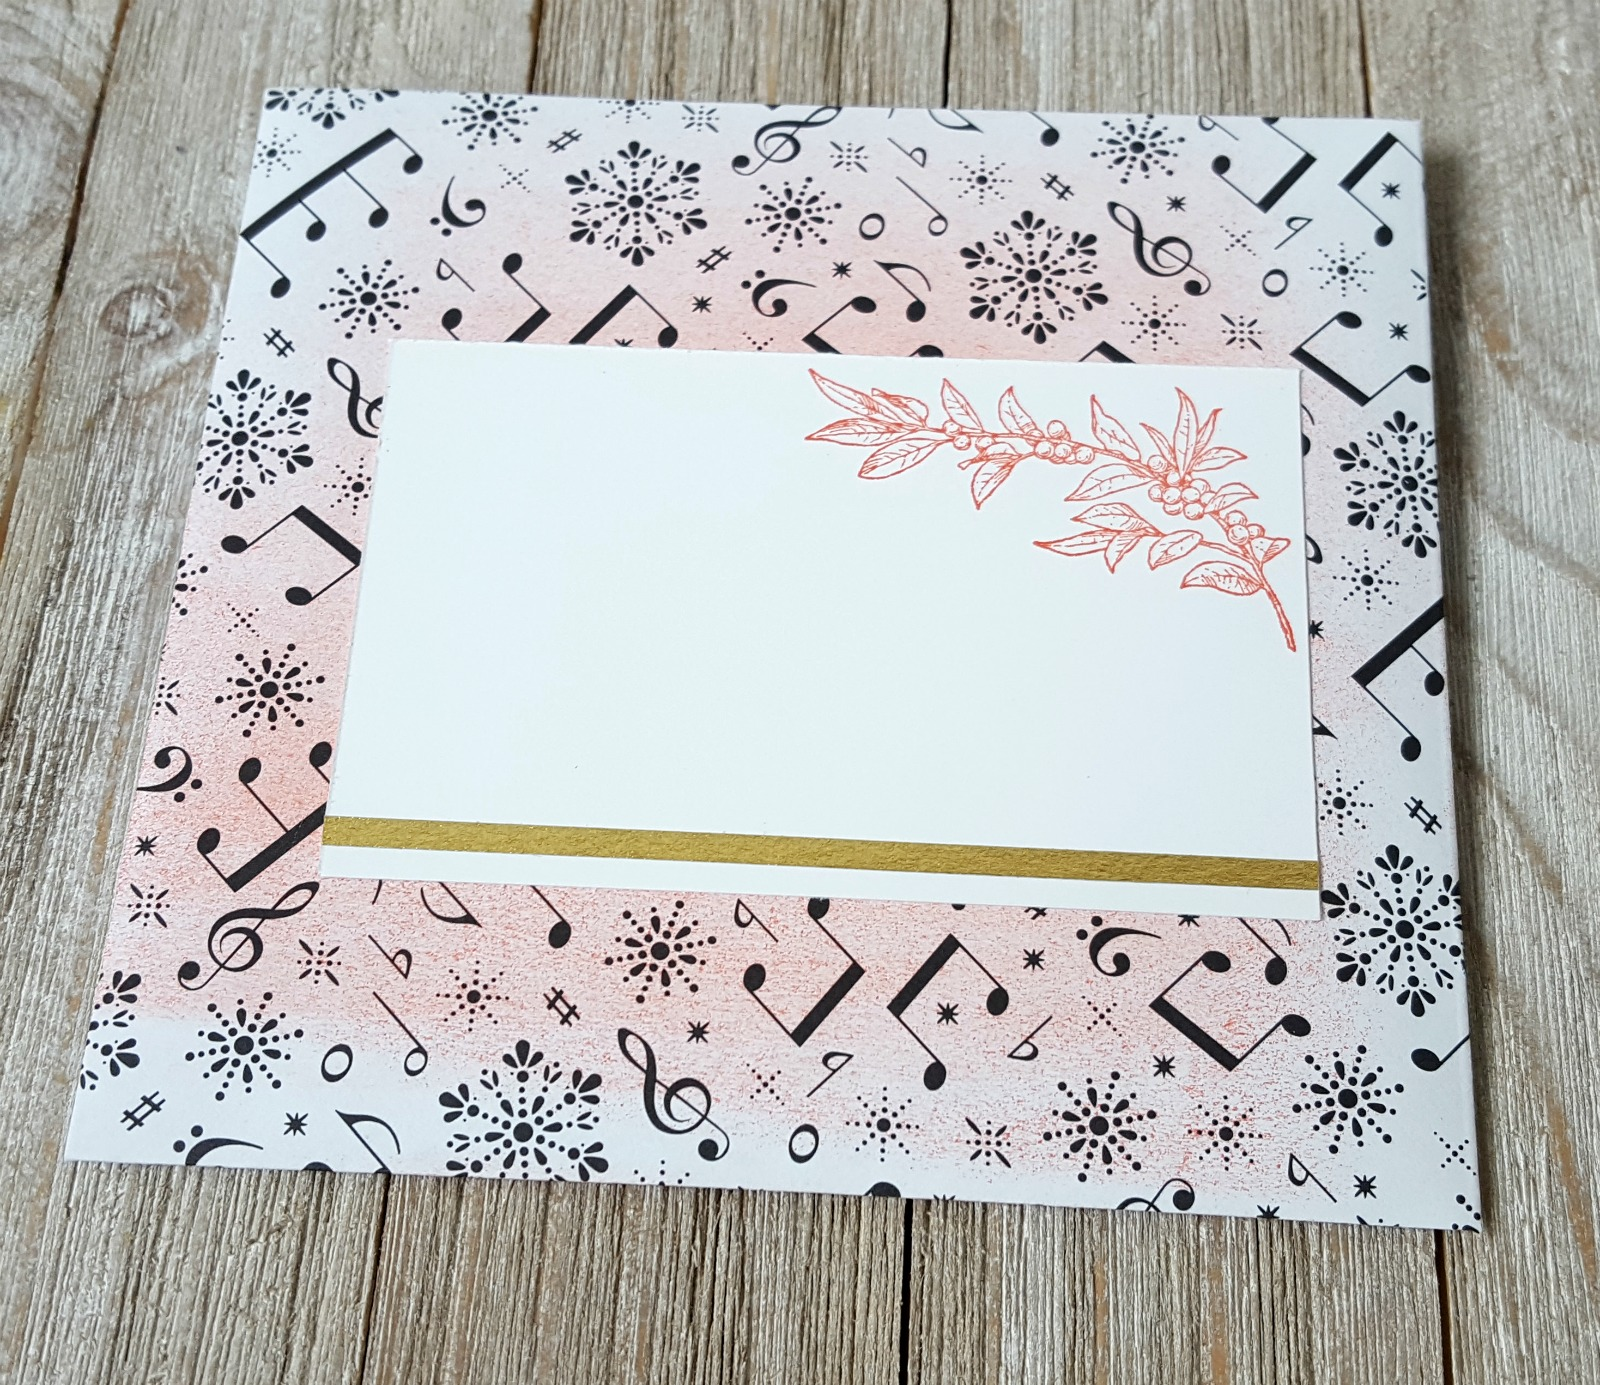 Stampin' Up! Merry Music specialty paper with Envelope Punch Board & Musical Season stamps, sponge brayer, Year of Cheer specialty washi tape - Crazy Crafters Blog Hop - Sarah Fleming - Prepare to Dye Papercrafts